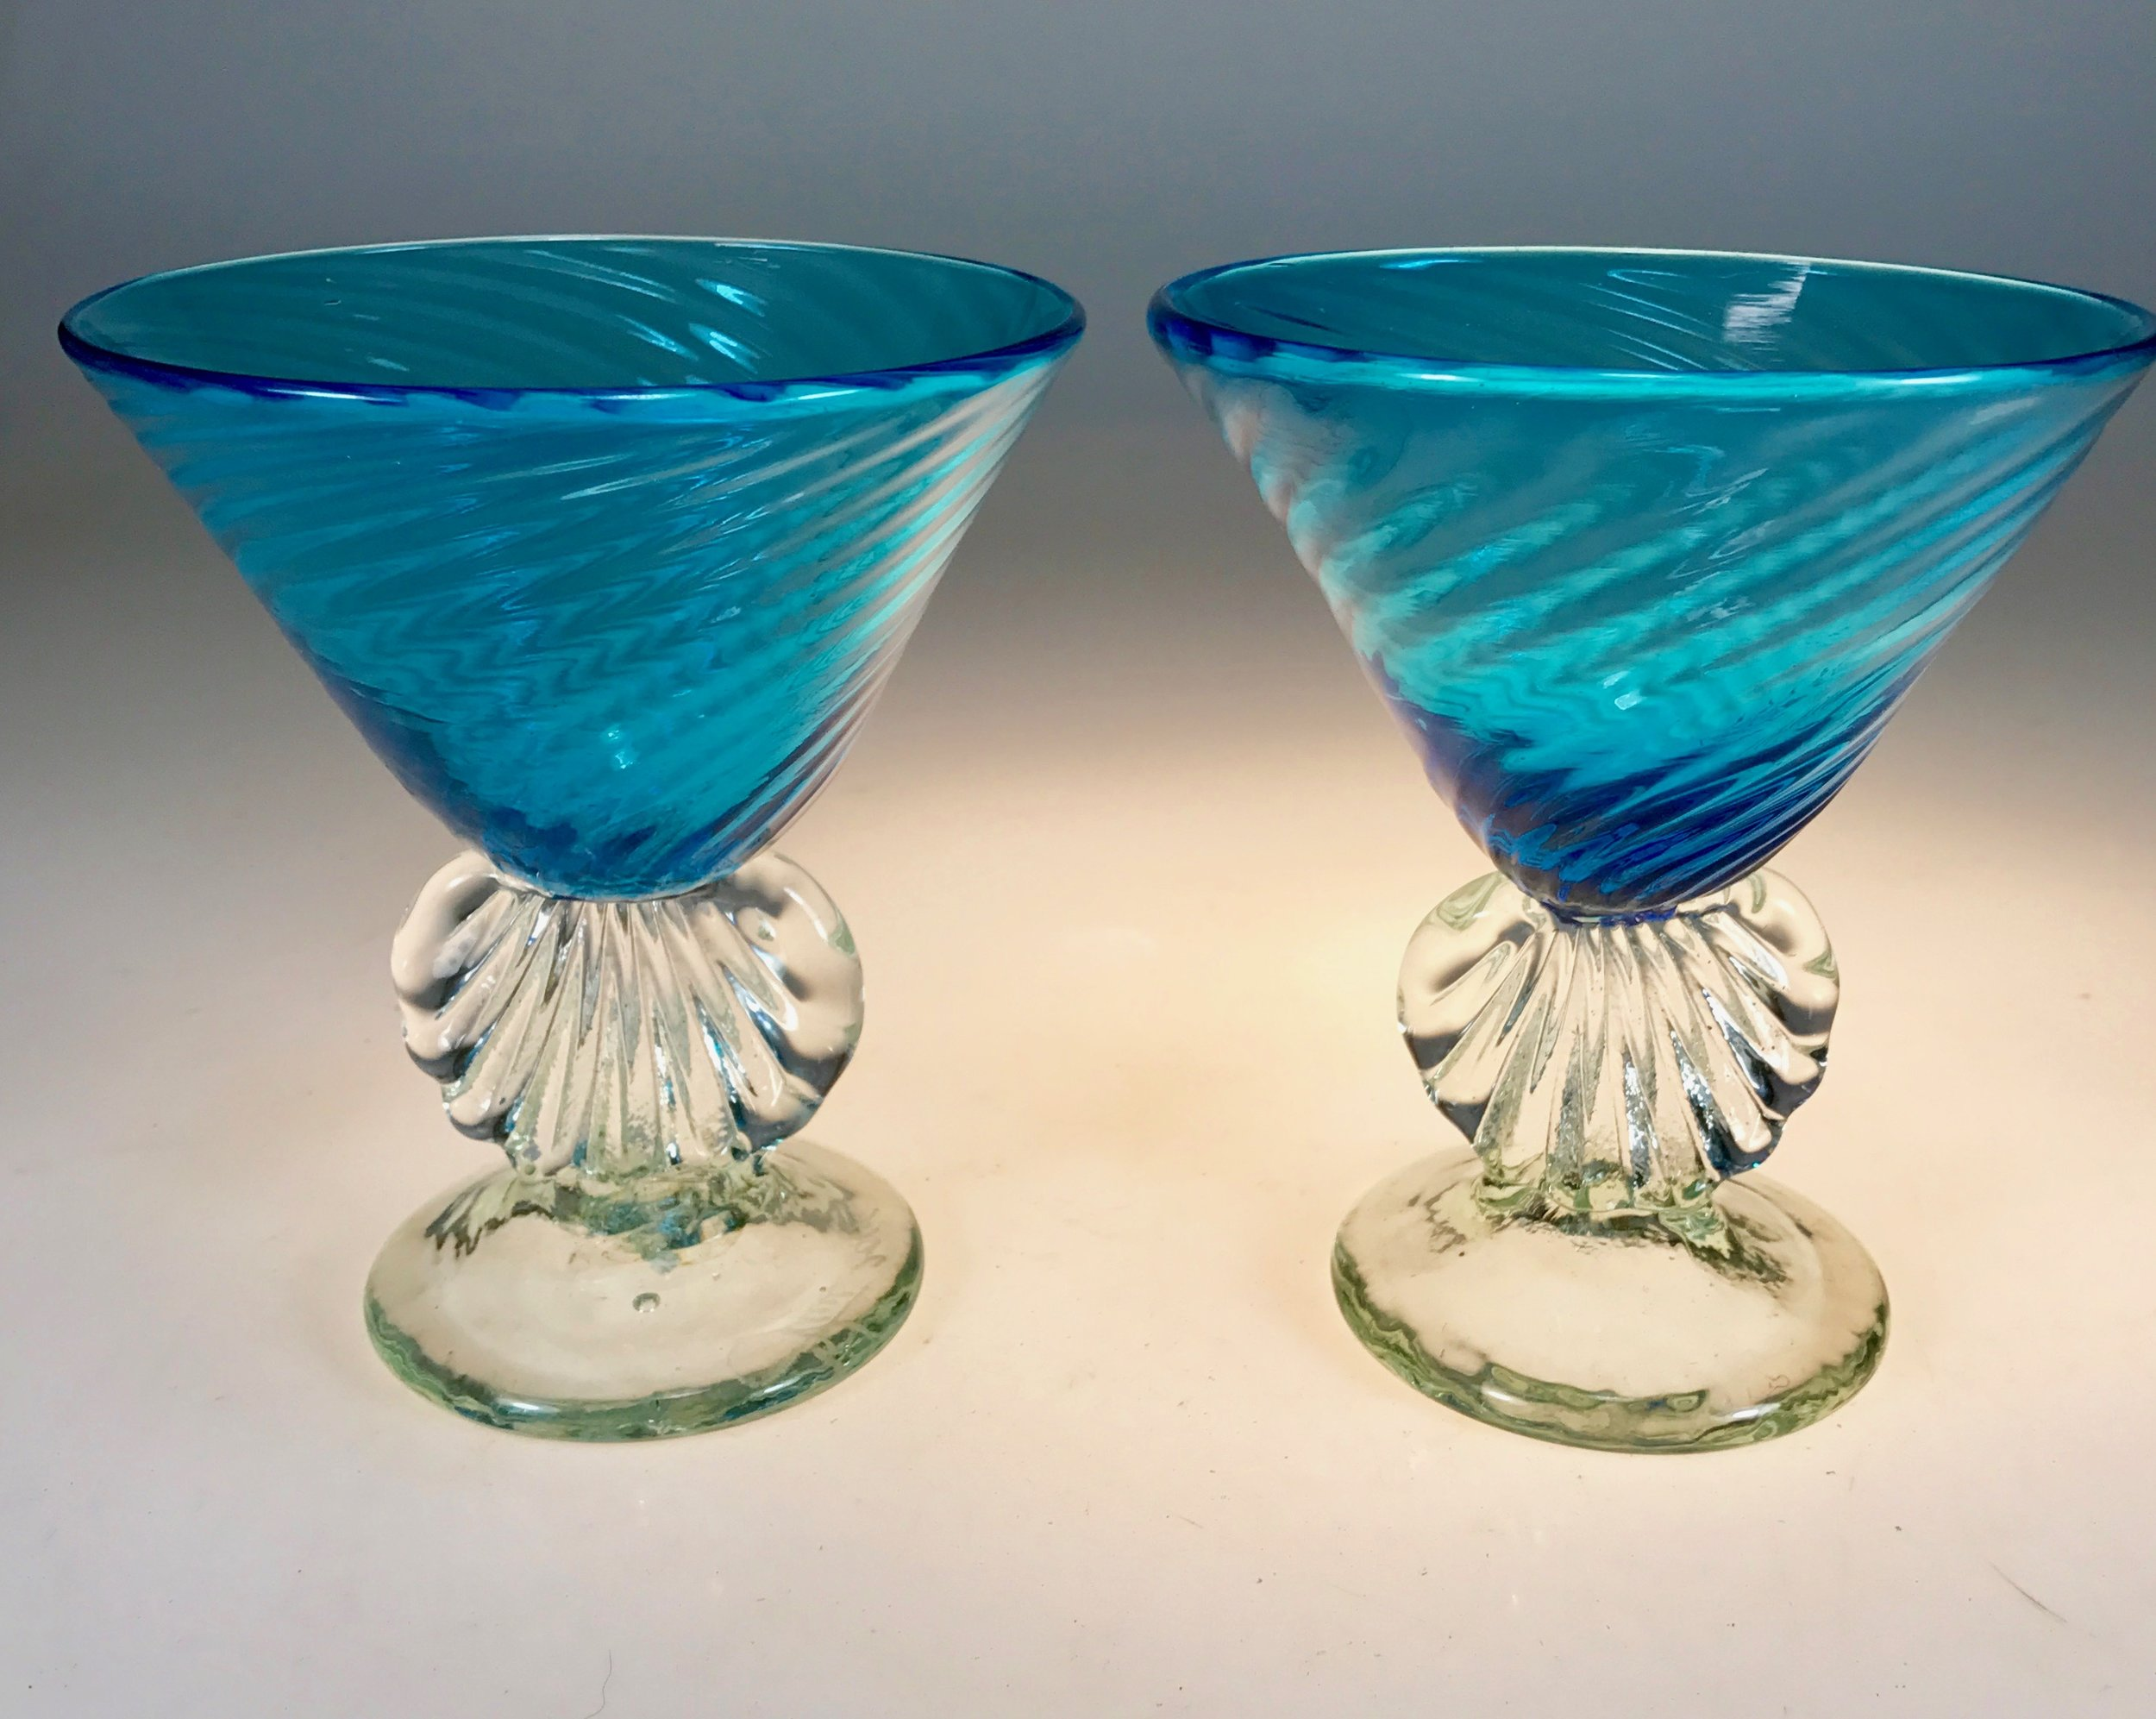 a Couple of my shell Martini glasses   strini art glass. 2017